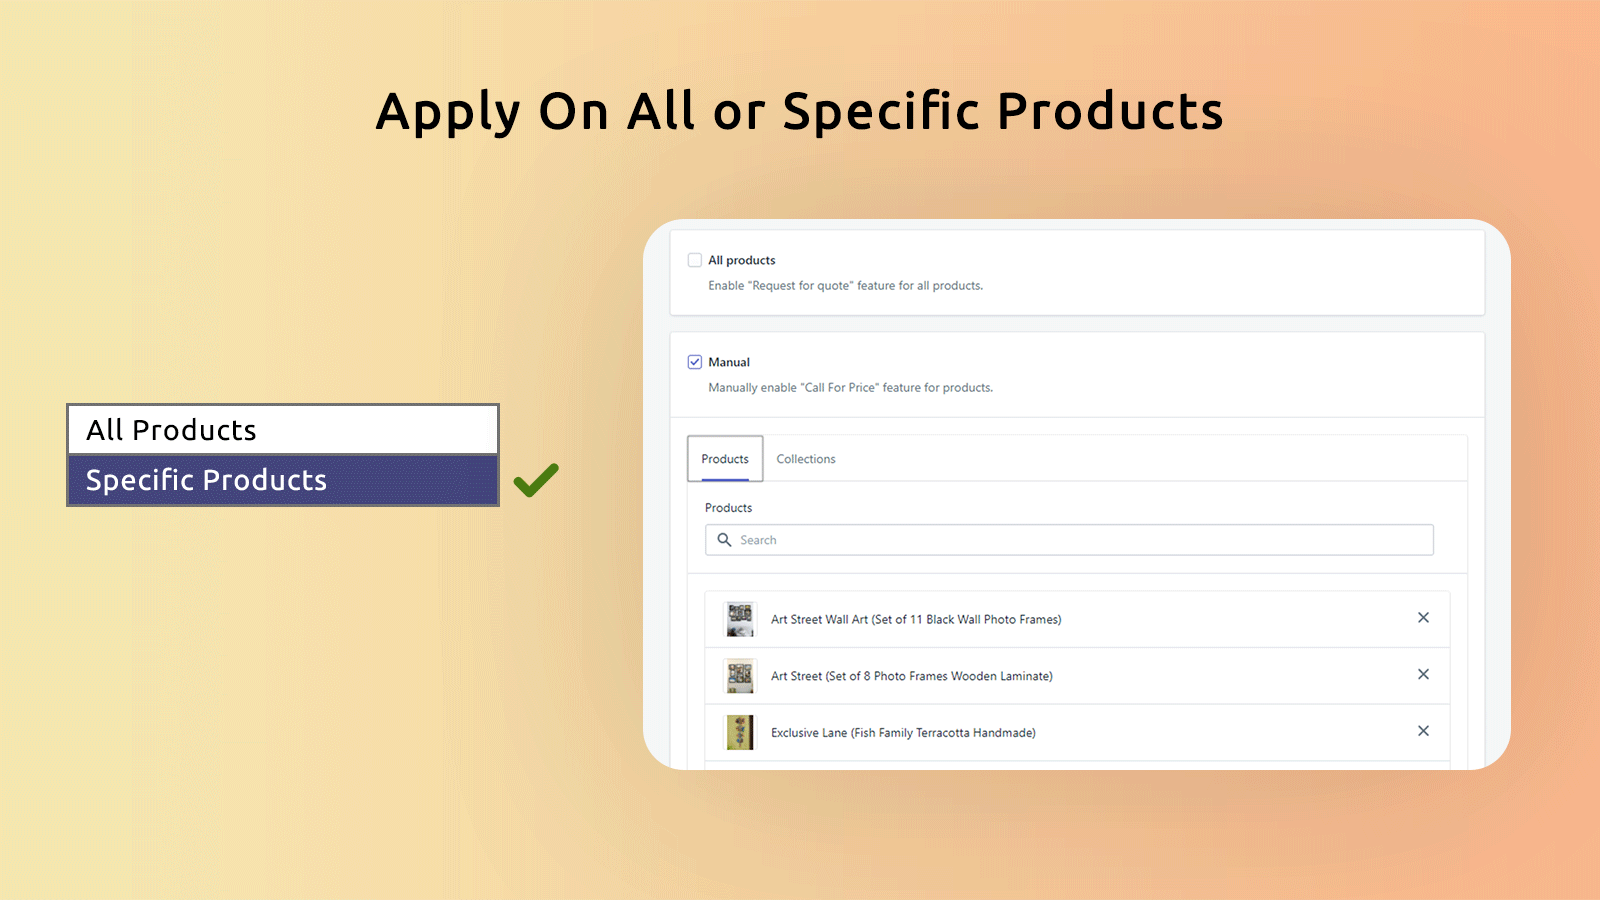 apply on all or specific products